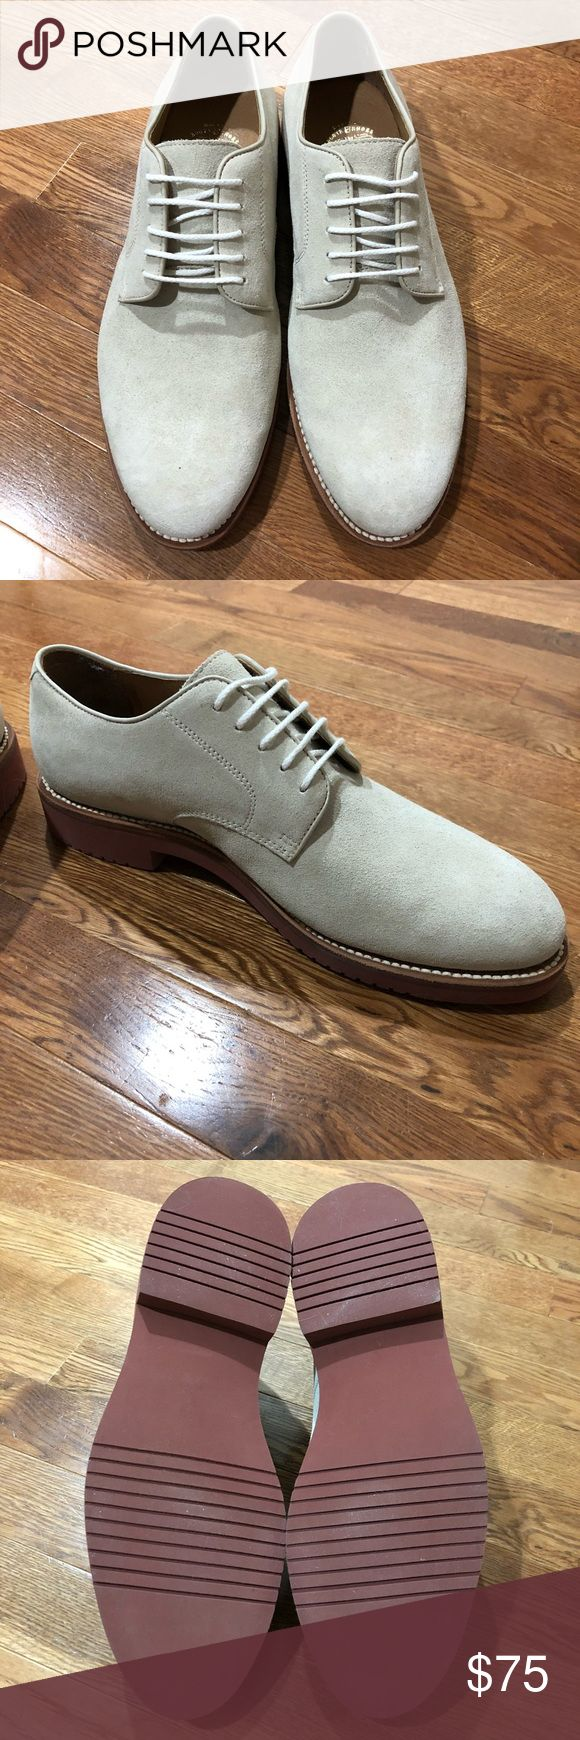 J. Crew Kenton Suede Bucks - White BRAND NEW, NEVER WORN! Shoes that effortlessly span dapper and durable: The classic silhouette is recast slightly slimmer for a more modern feel and finished with a genuine Goodyear-welt construction. That means the sole is sewn on rather than cemented, resulting in a more durable, breathable fit that only gets better with wear. Suede upper. Leather lining. Long-wearing brick EVA sole. Goodyear welt construction. Color is very light grey/white. J. Crew…